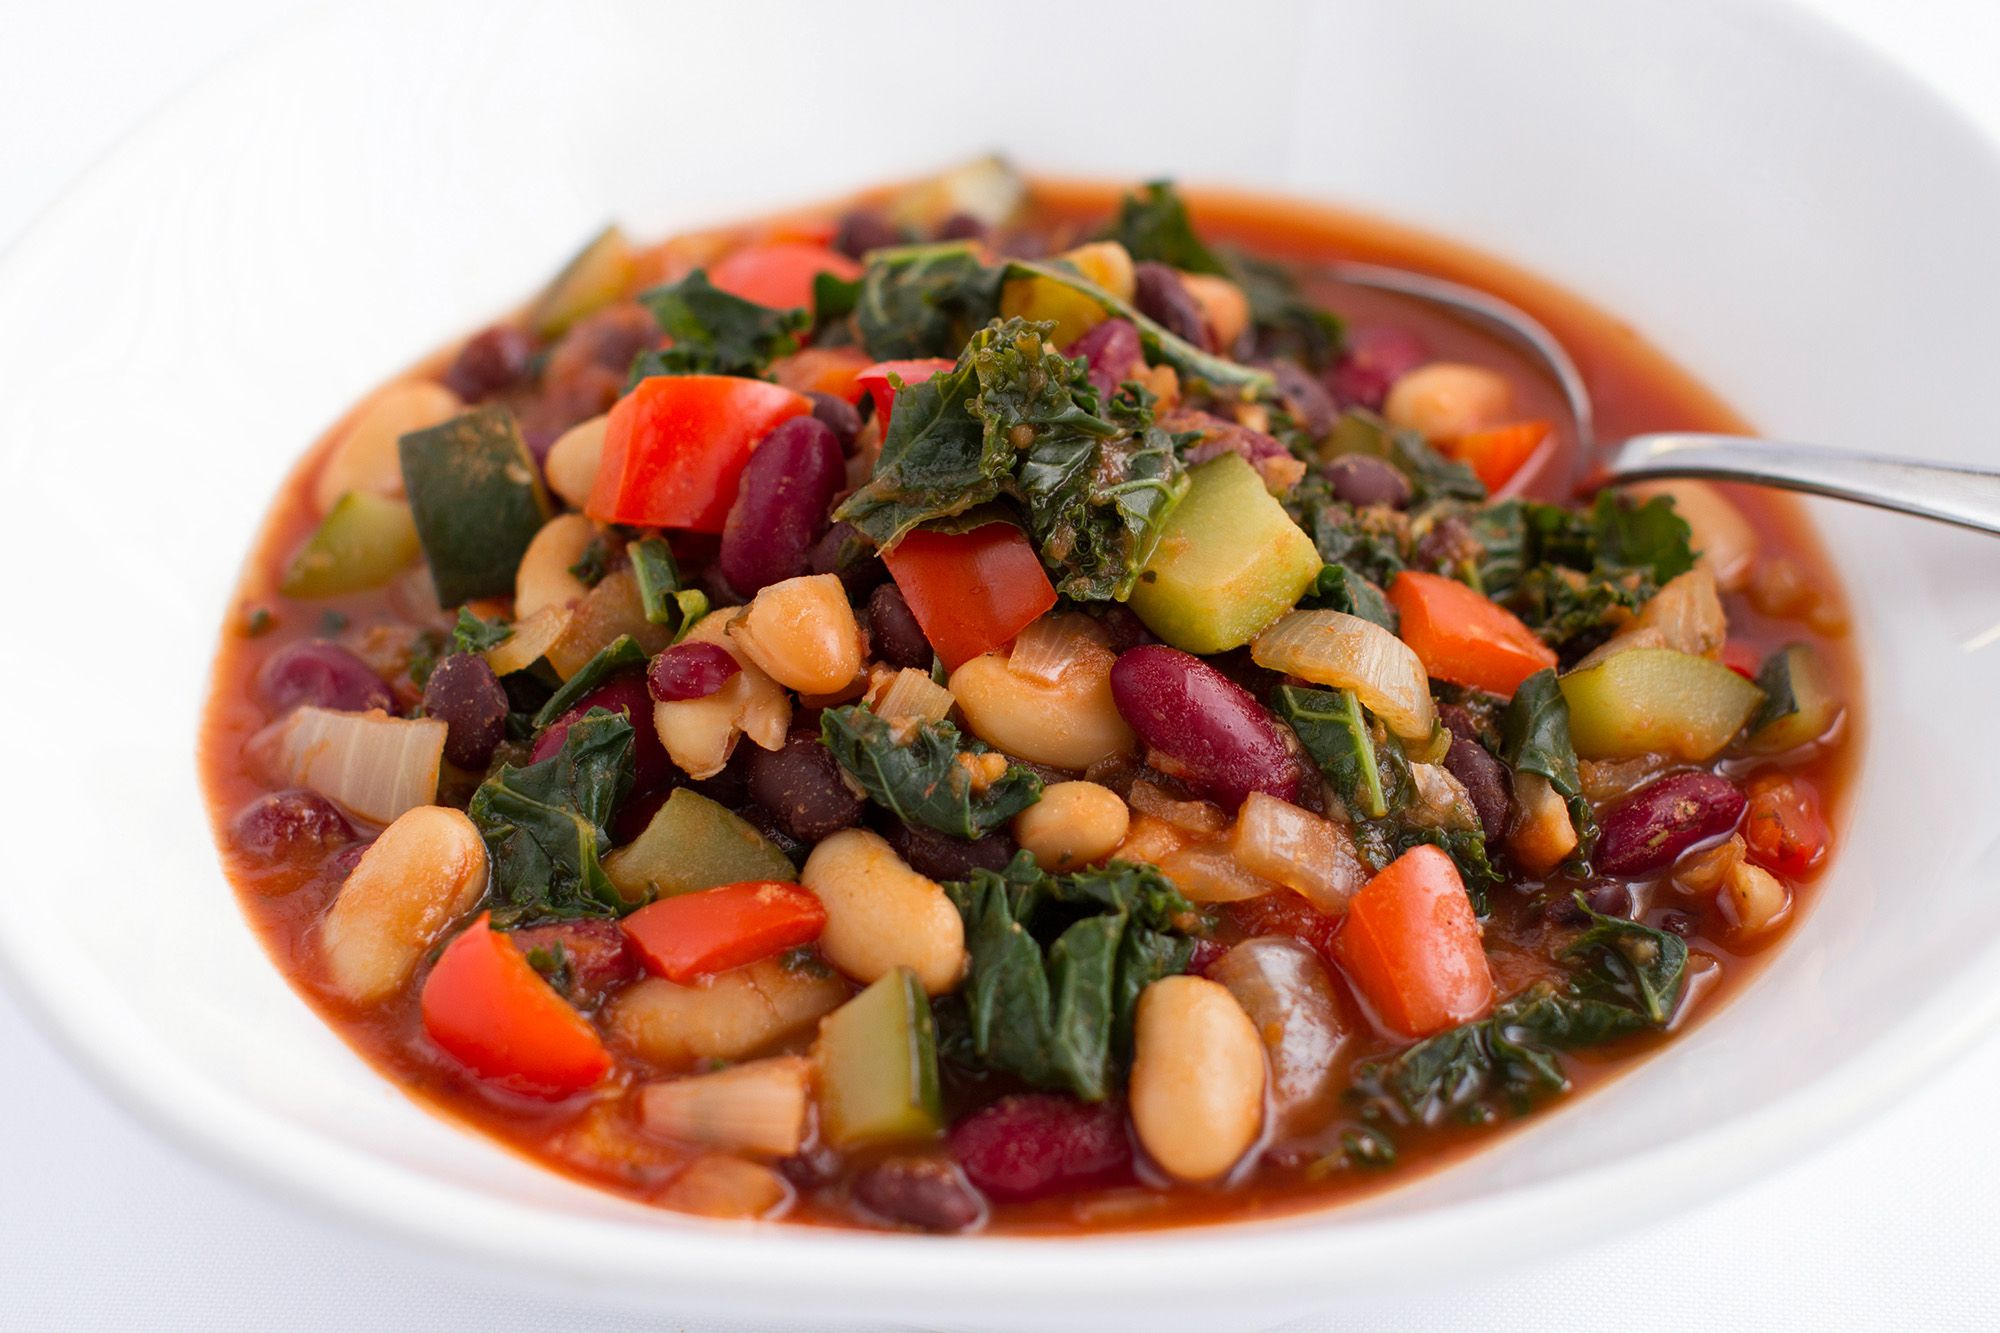 This simple, inexpensive pot of beans is rich in filling plant protein and cholesterol-reducing fiber. Use them as a base for hearty soups or chili.